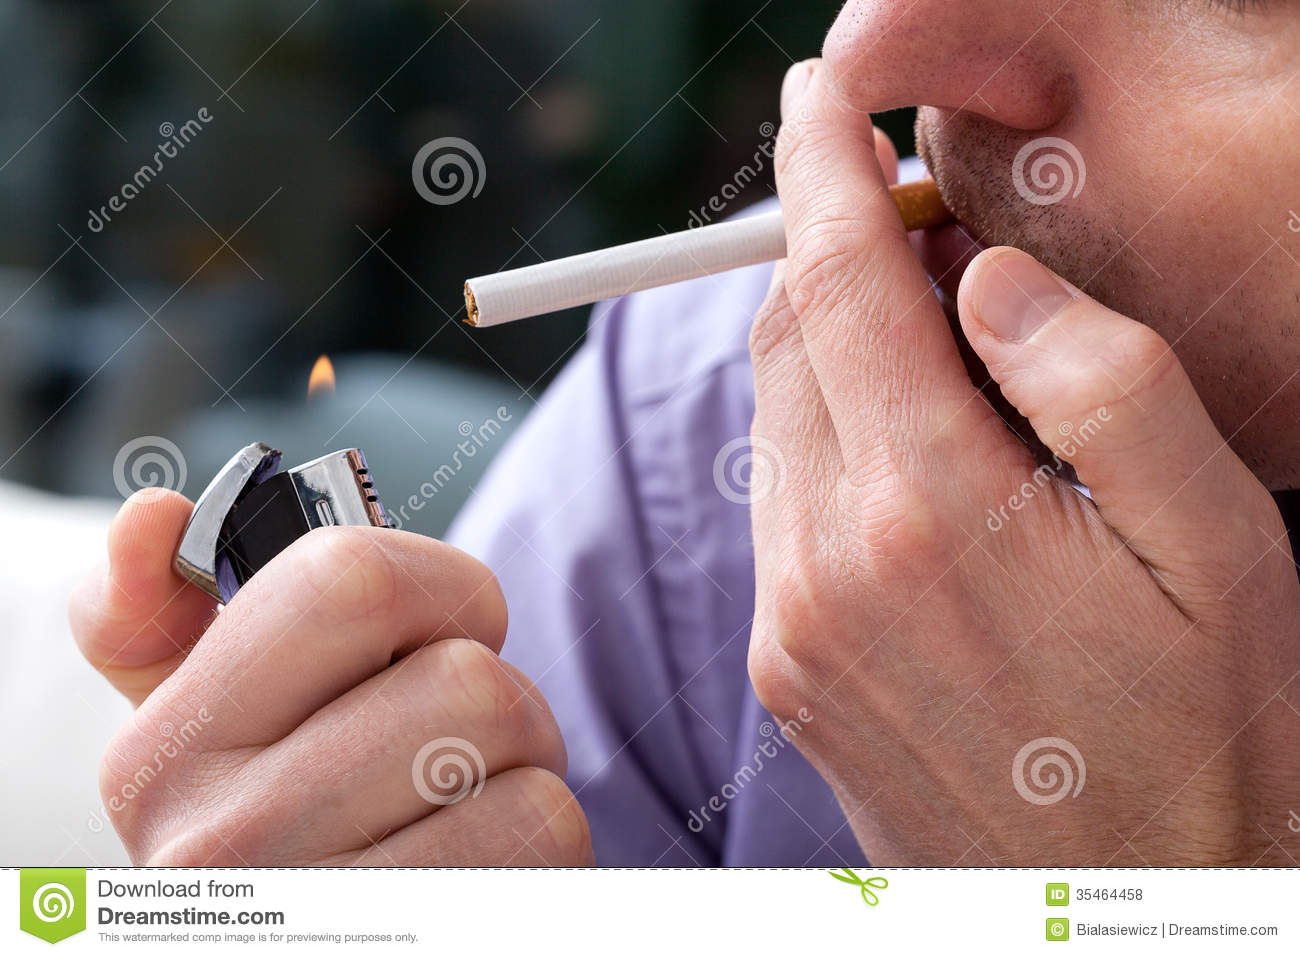 Lighting Up A Cigarette Royalty Free Stock Photos - Image: 35464458